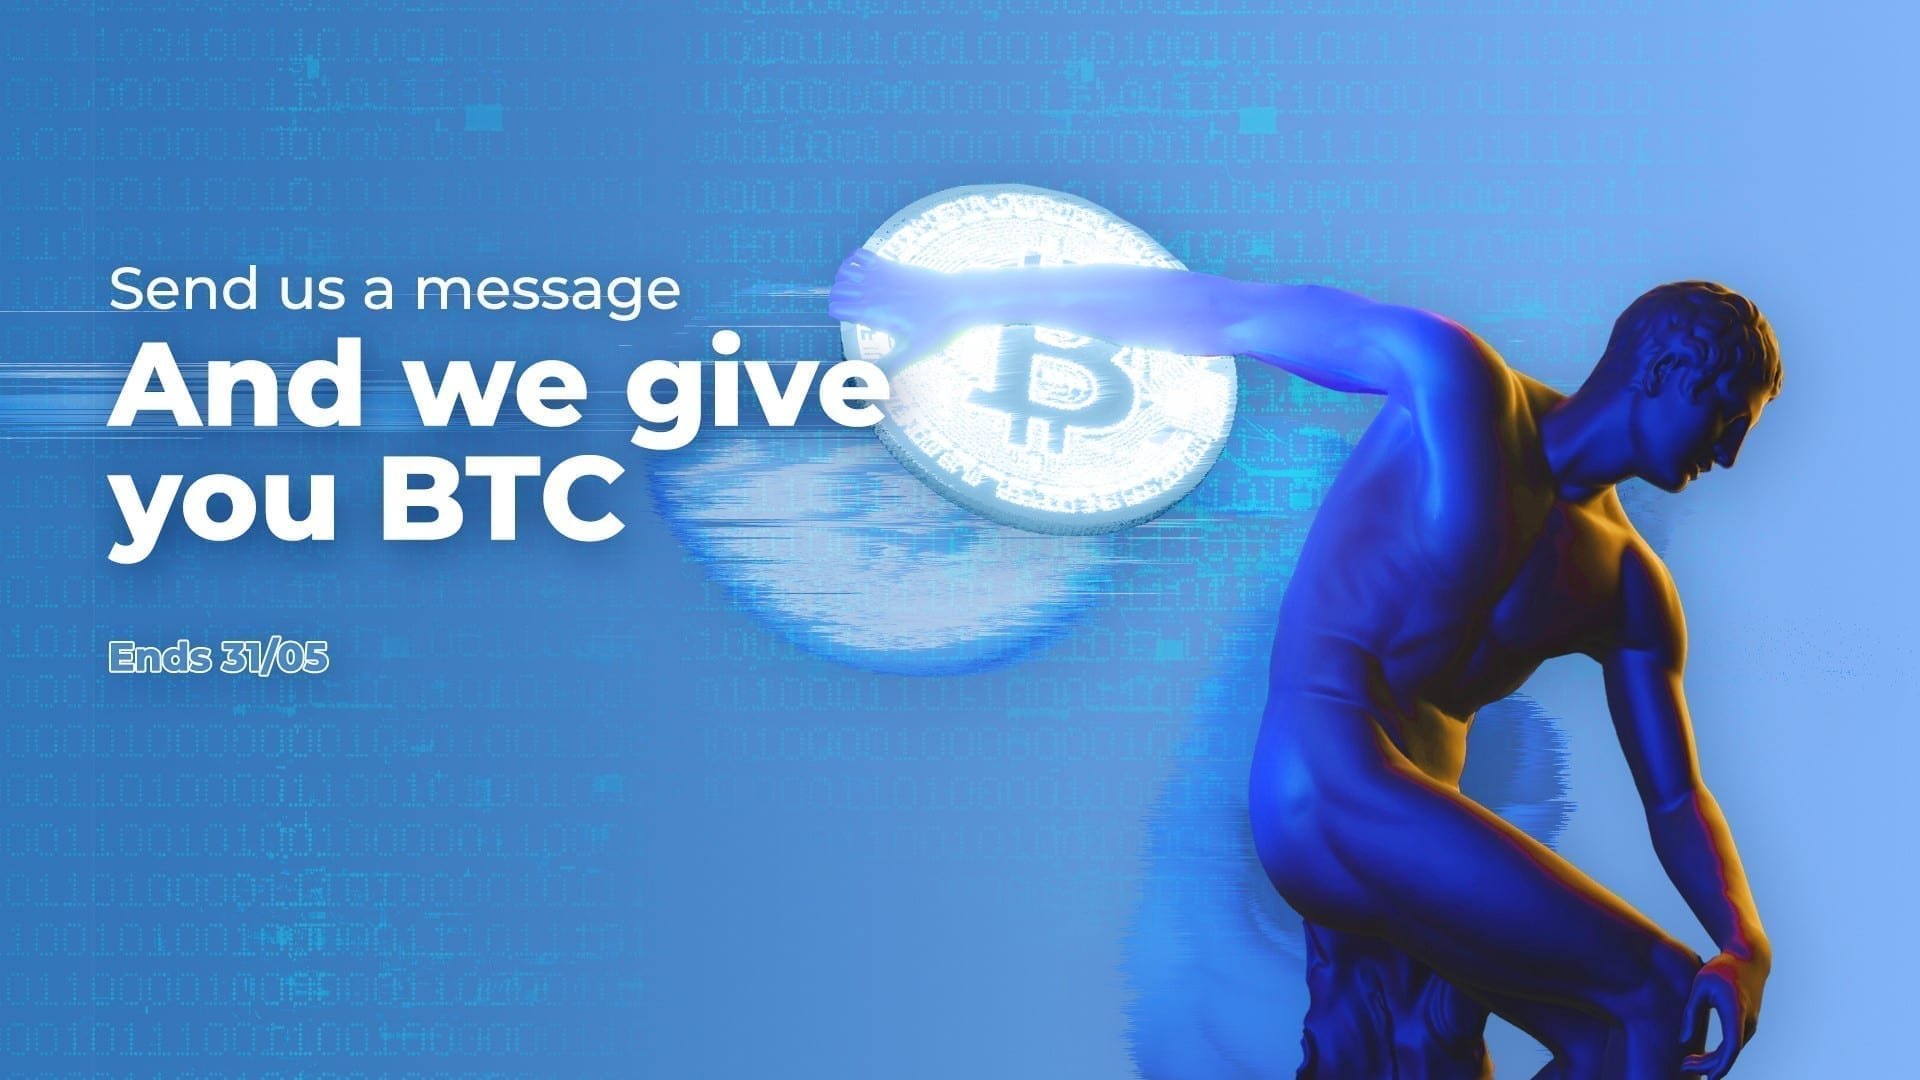 TRASTRA is giving away 10 EUR in BTC